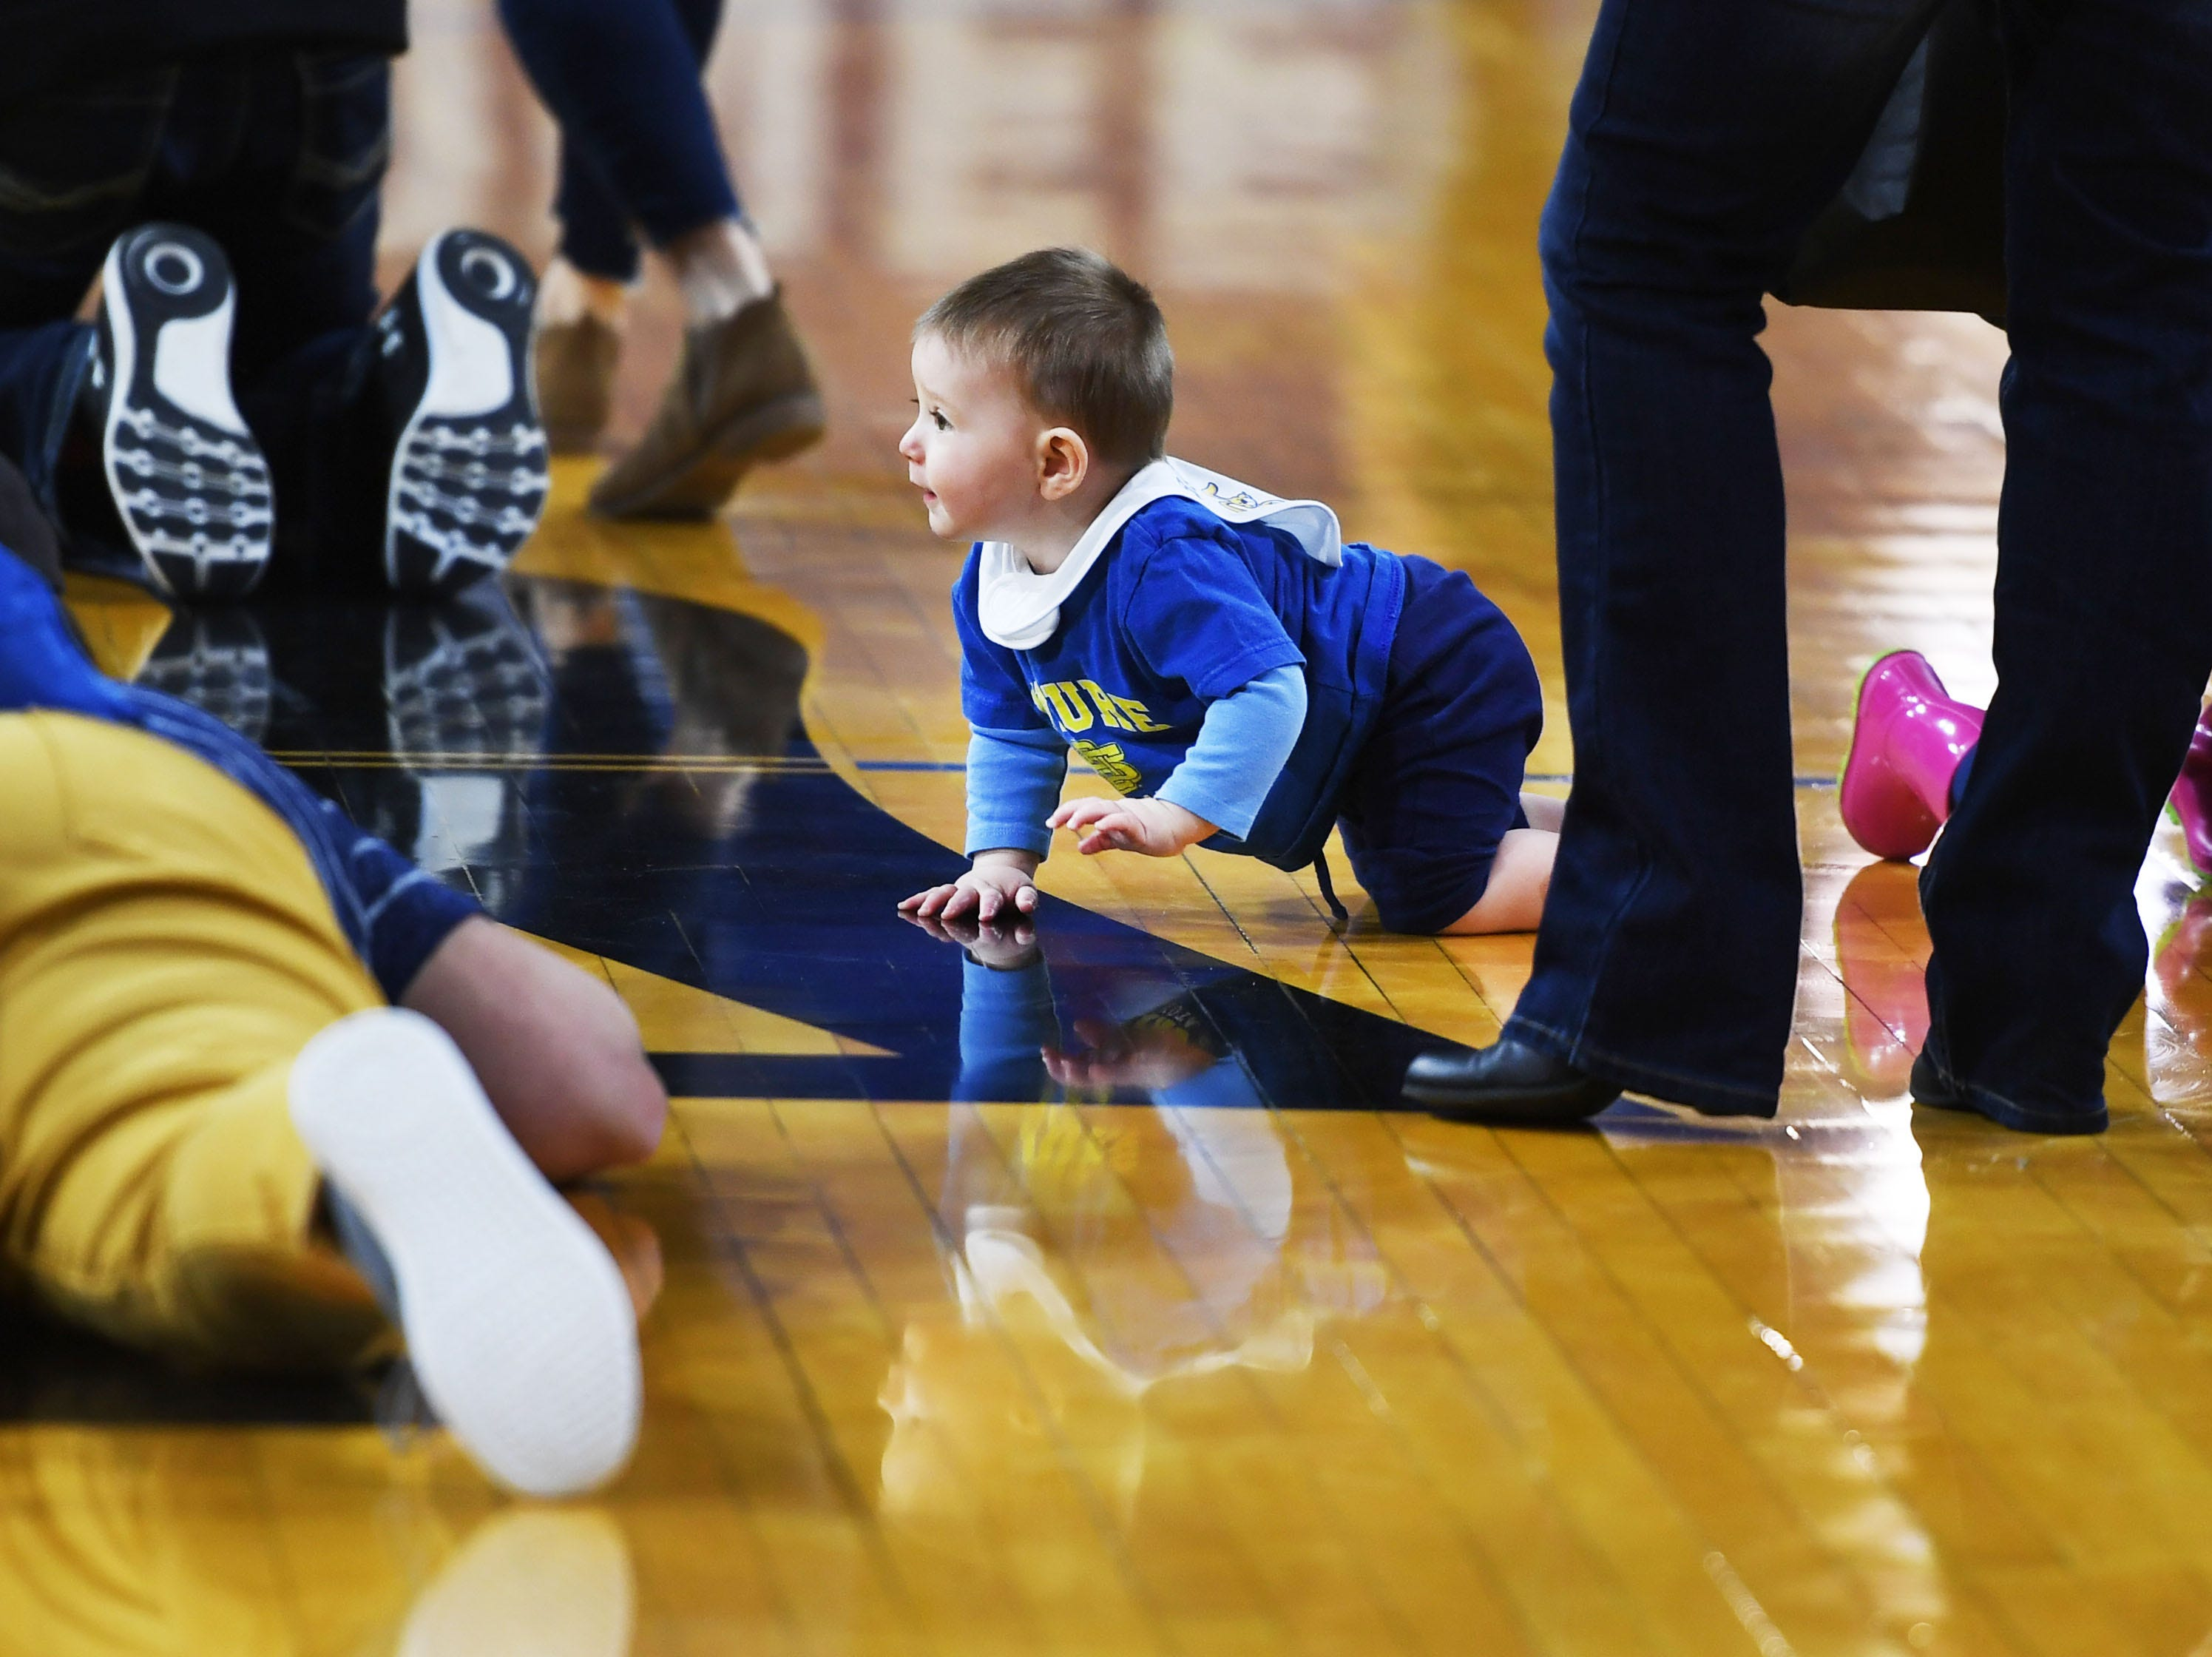 SDSU fans participate in a baby crawl race at half time during the game against Omaha Saturday, Jan. 26, at Frost Arena in Brookings.